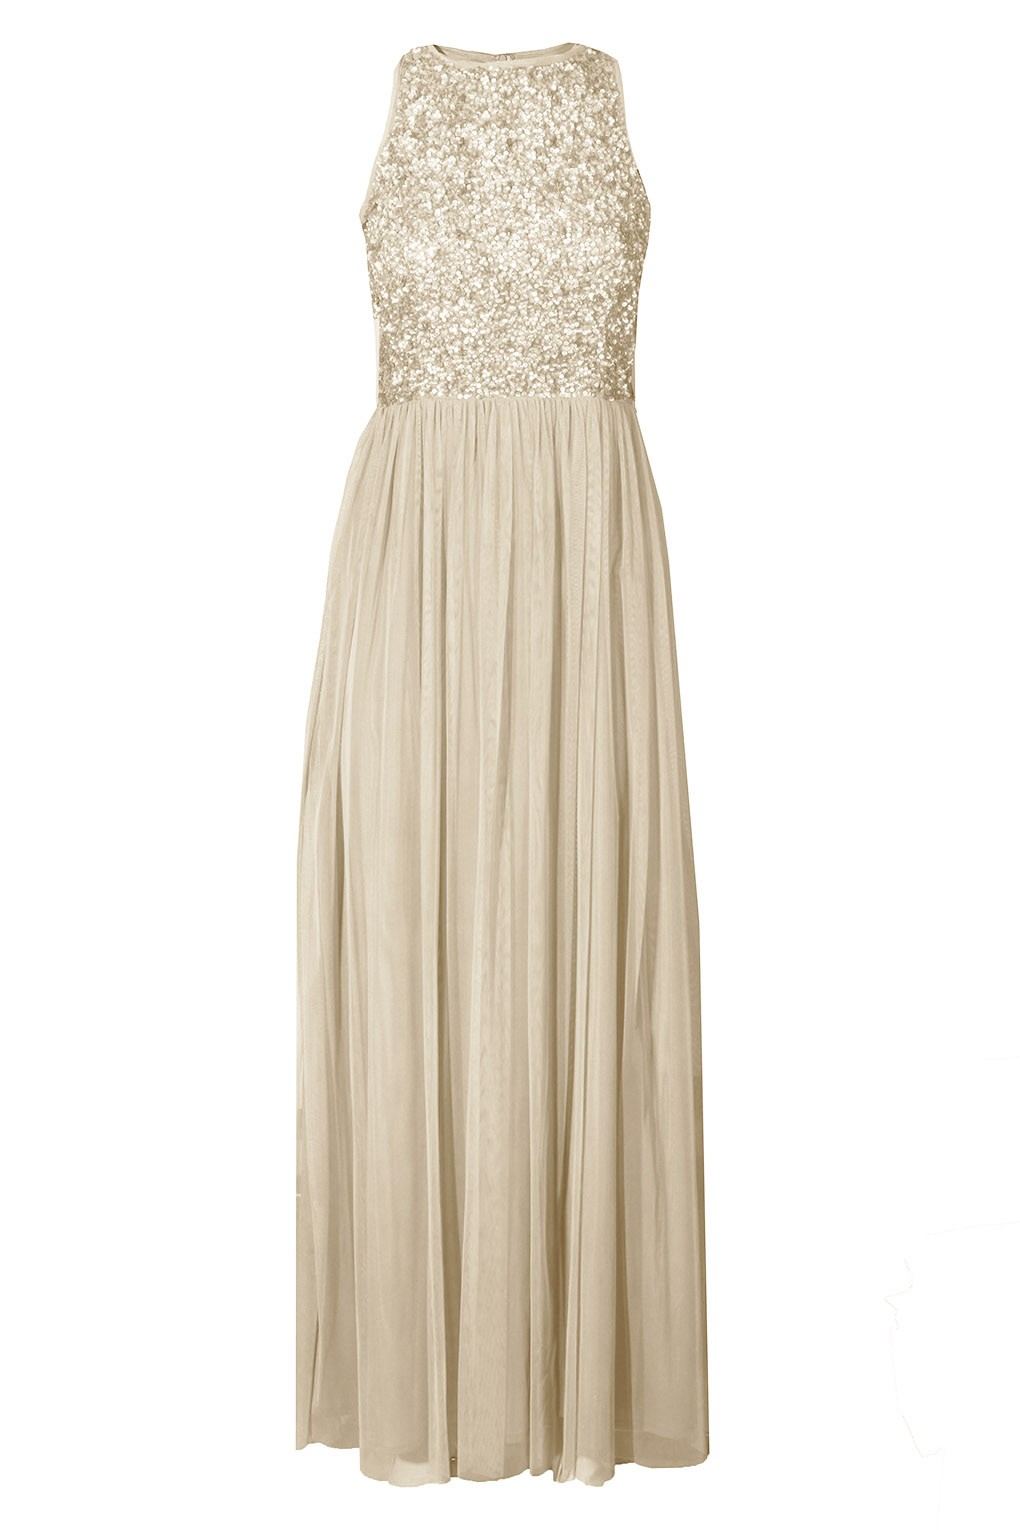 LACE   BEADS PICASSO CREAM EMBELLISHED MAXI DRESS  12e8159f7